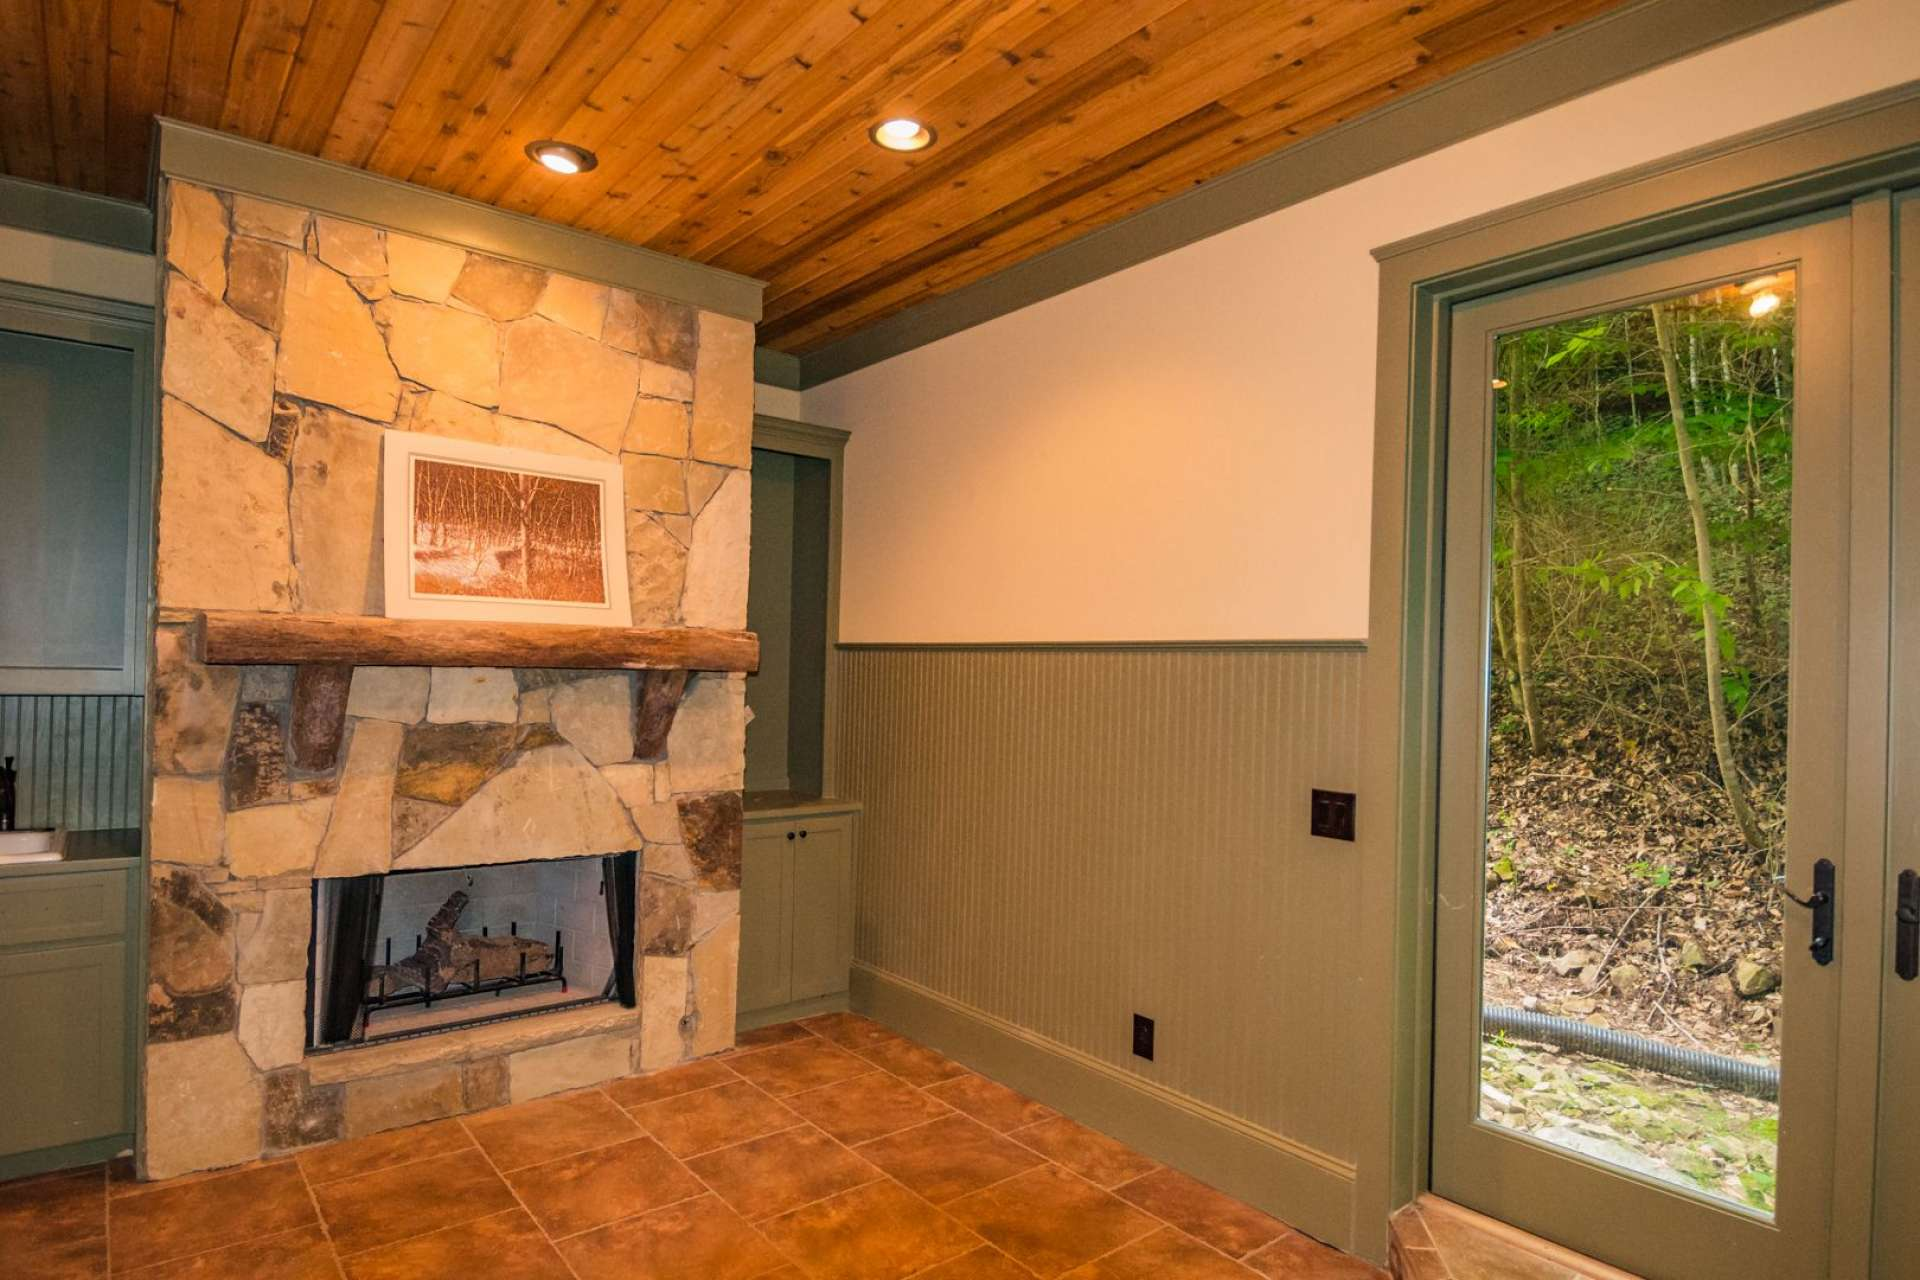 In the master suite wing, you will find this bonus room with fireplace and built-in cabinets that current owners used as a studio. You can utilize this space for any number of uses.